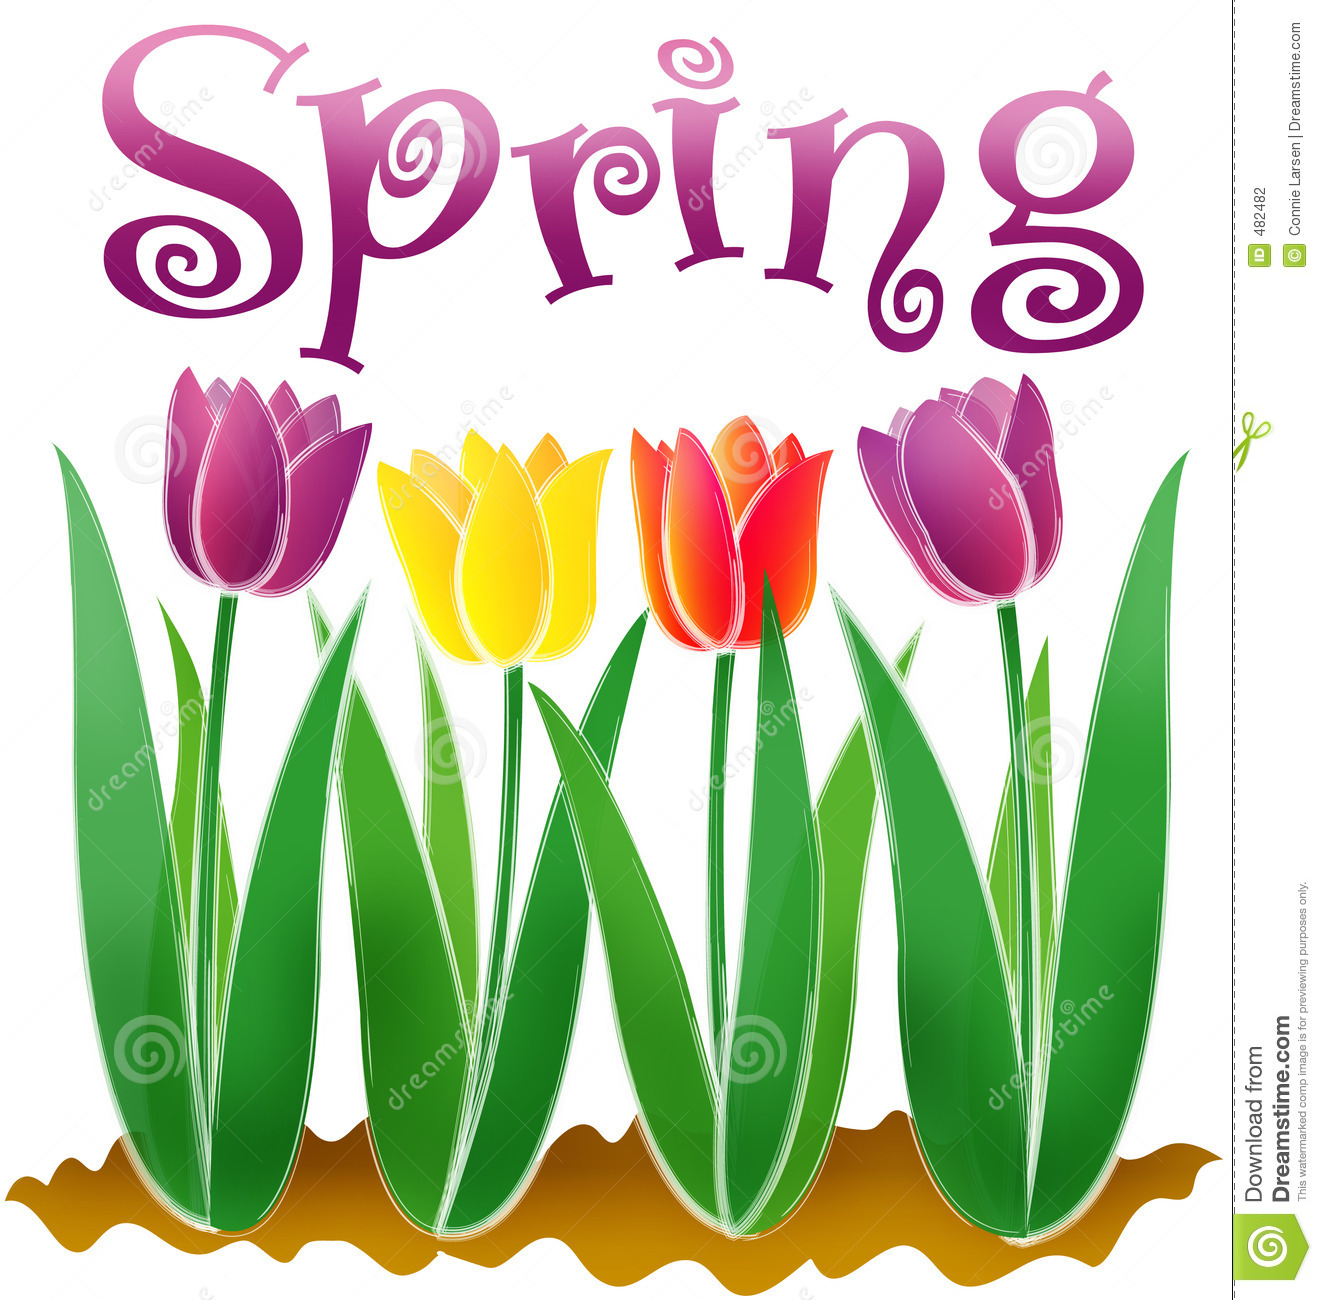 Spring Season Clipart - Clipart Kid